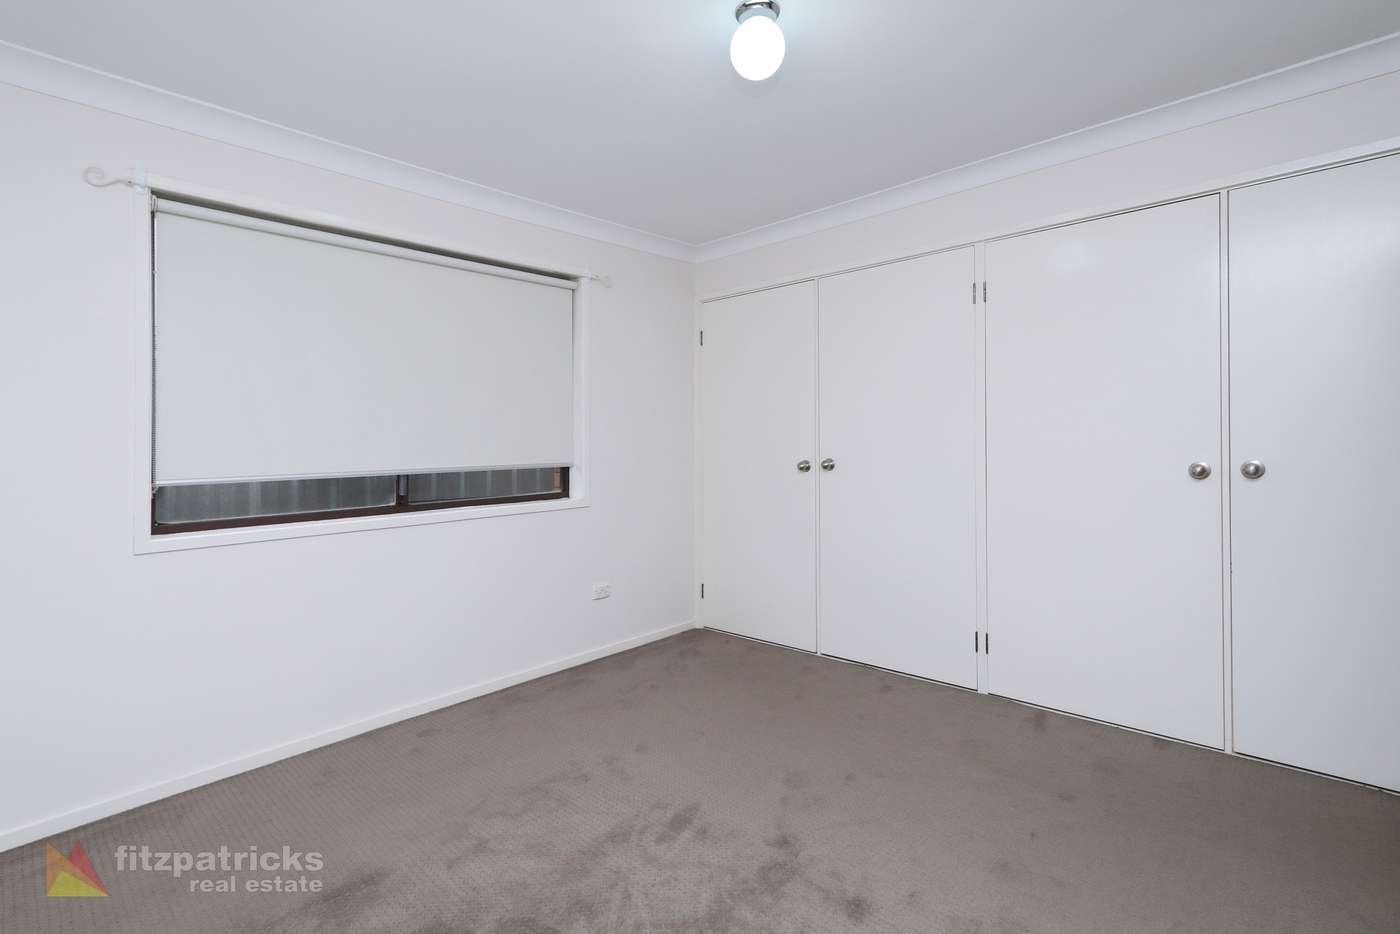 Fifth view of Homely house listing, 178 Gurwood Street, Wagga Wagga NSW 2650